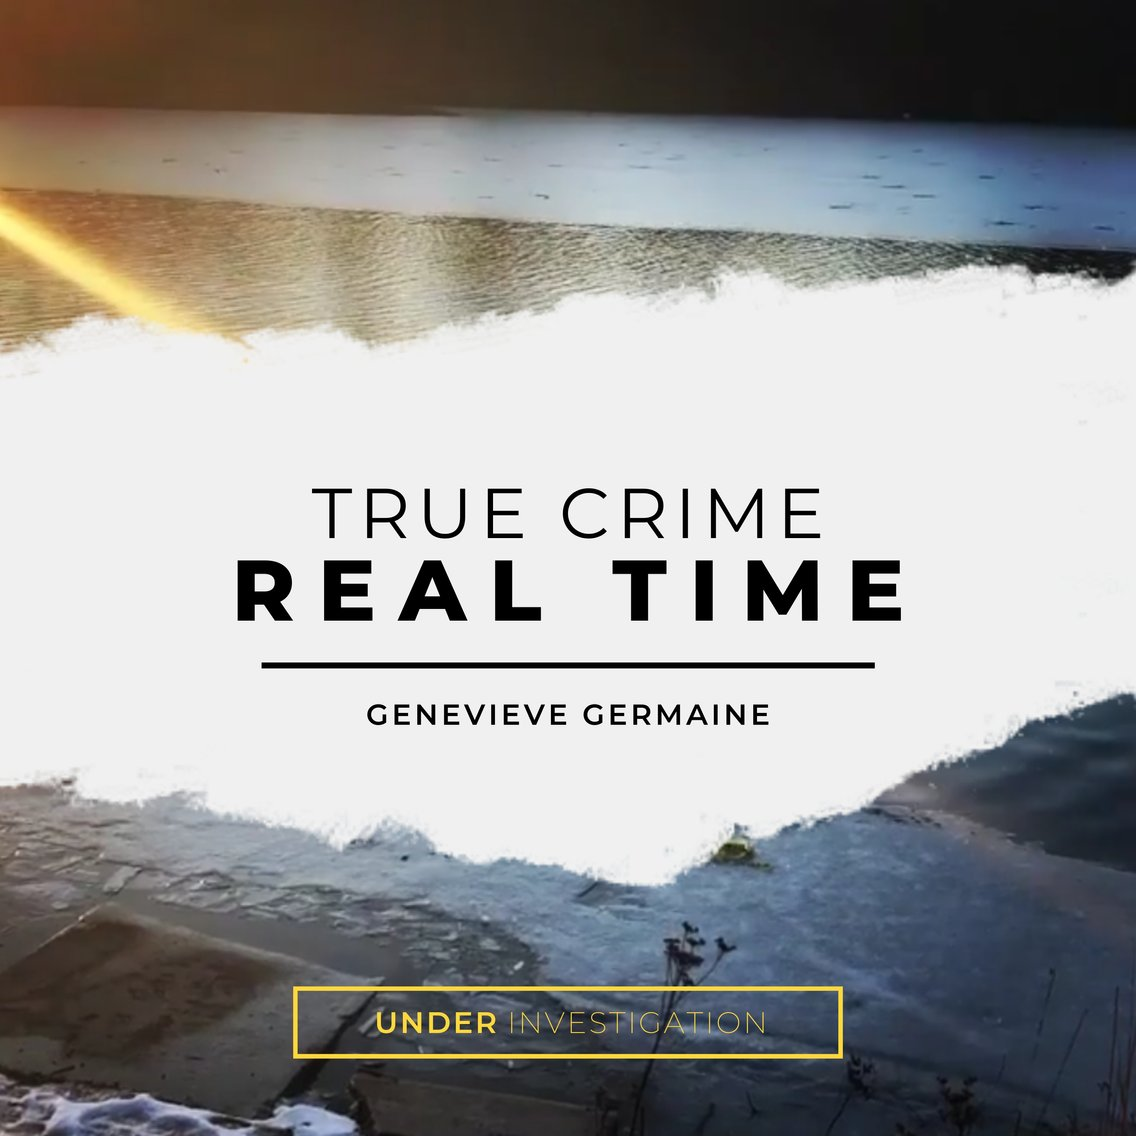 True Crime Real Time - Cover Image